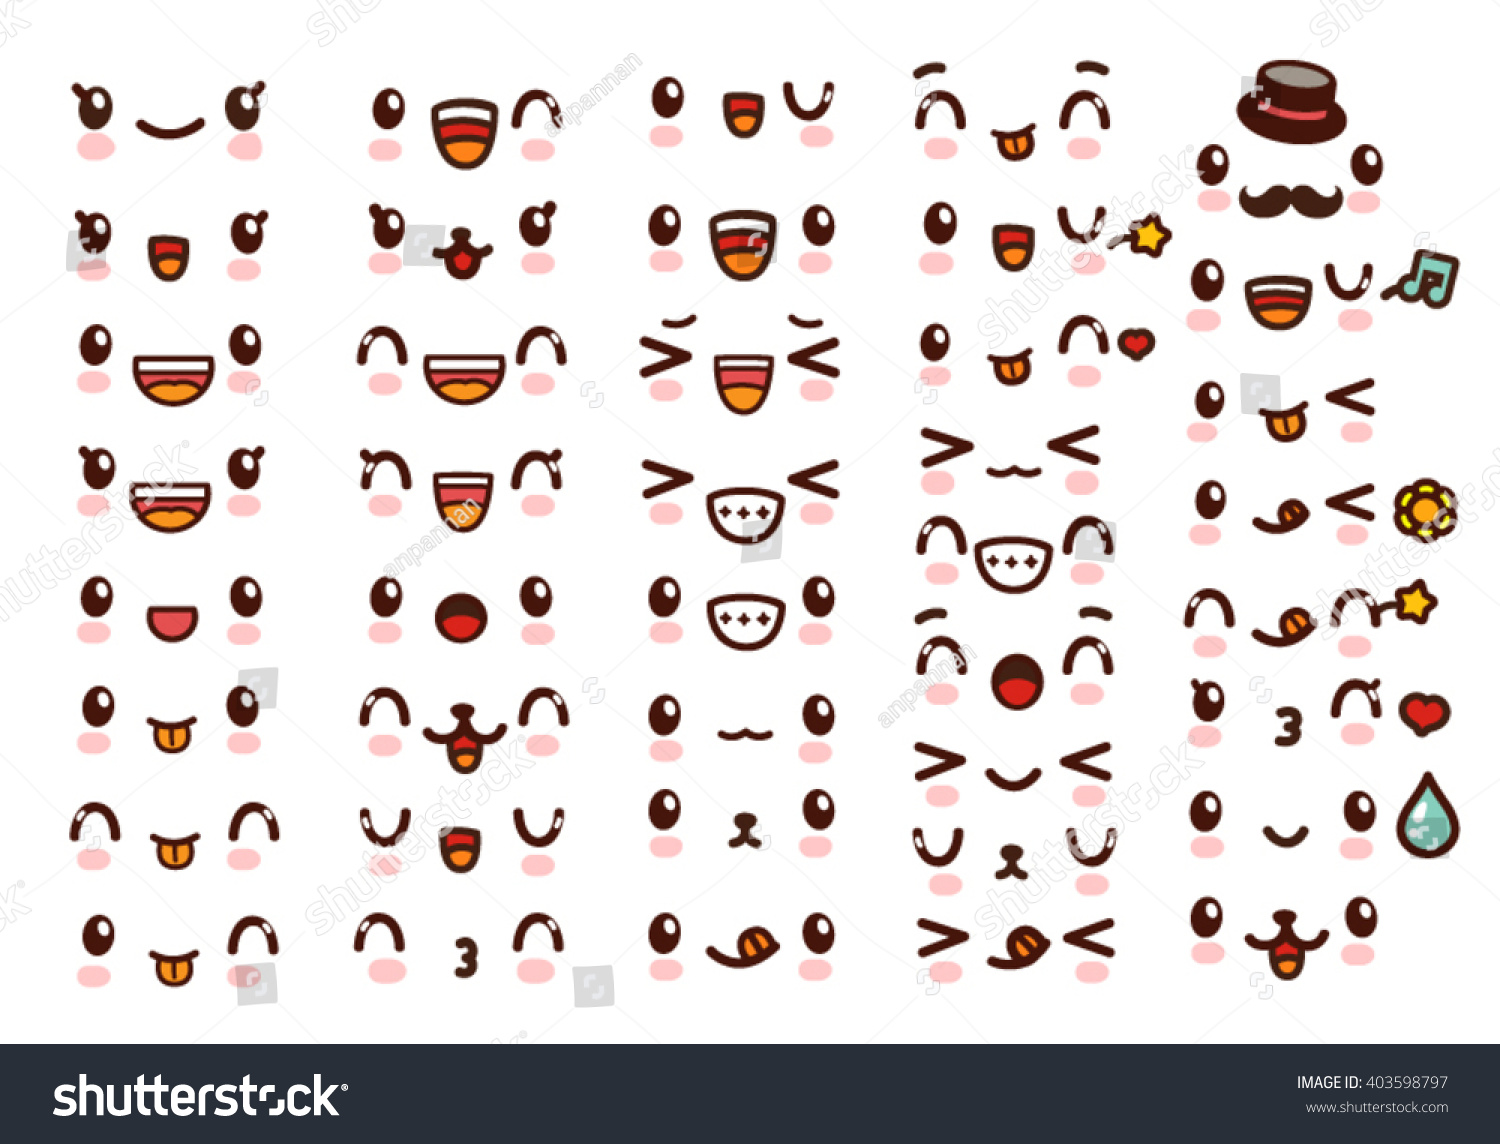 collection of cute lovely kawaii emoticon emoji doodle cartoon face smile happy wink